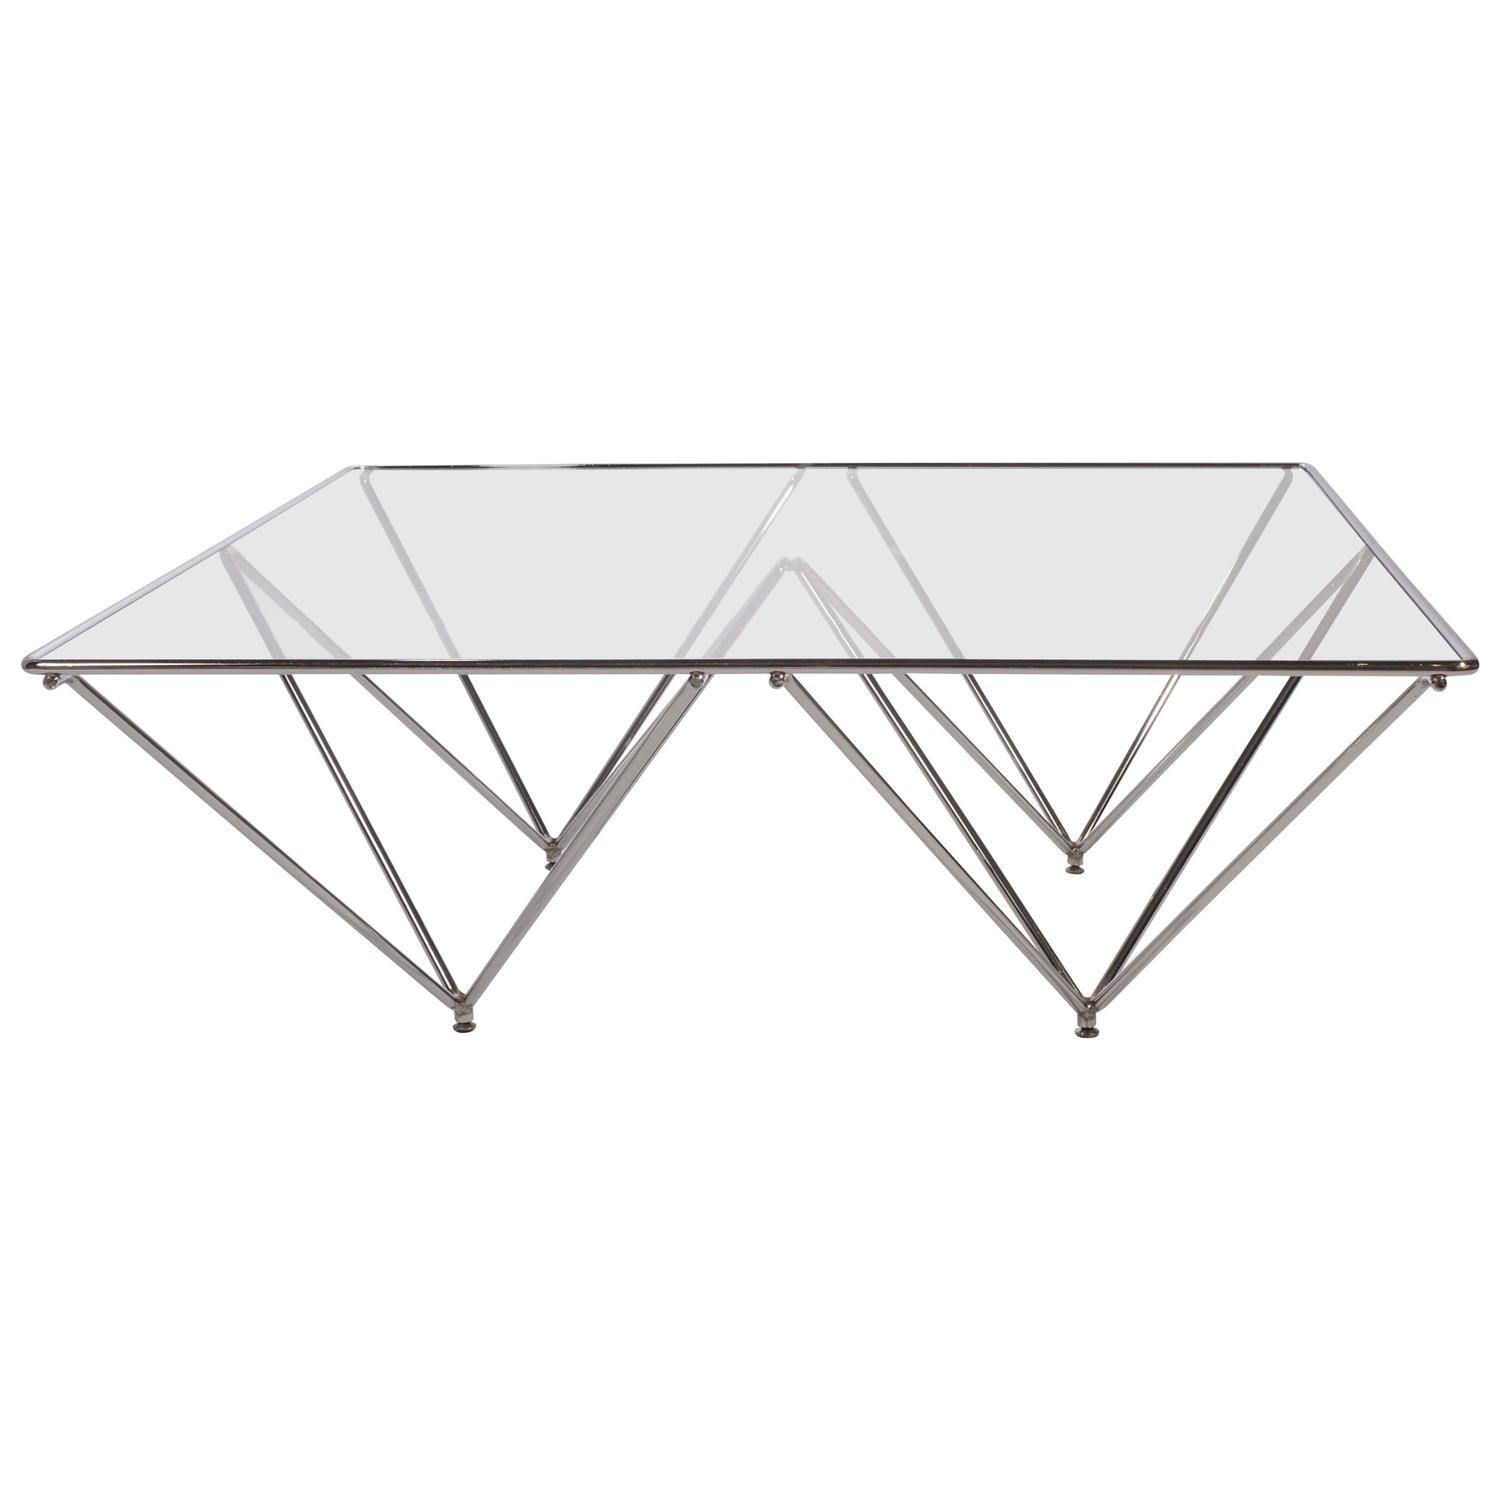 Style of Paolo Piva Alanda Coffee Table For Sale at 1stdibs